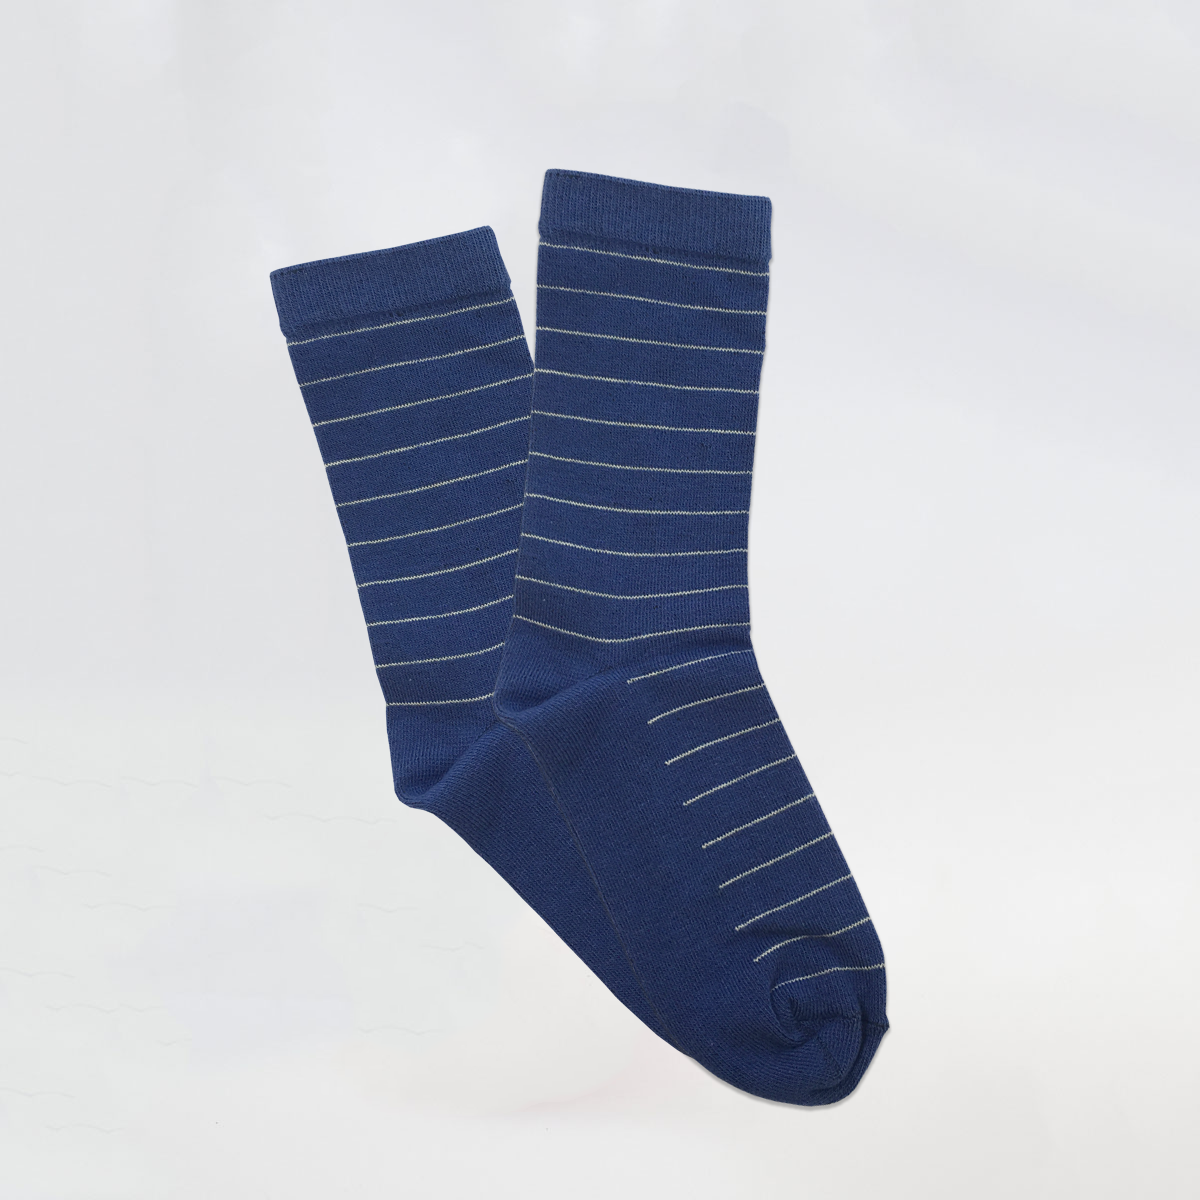 Bamboo boys socks with thin stripes